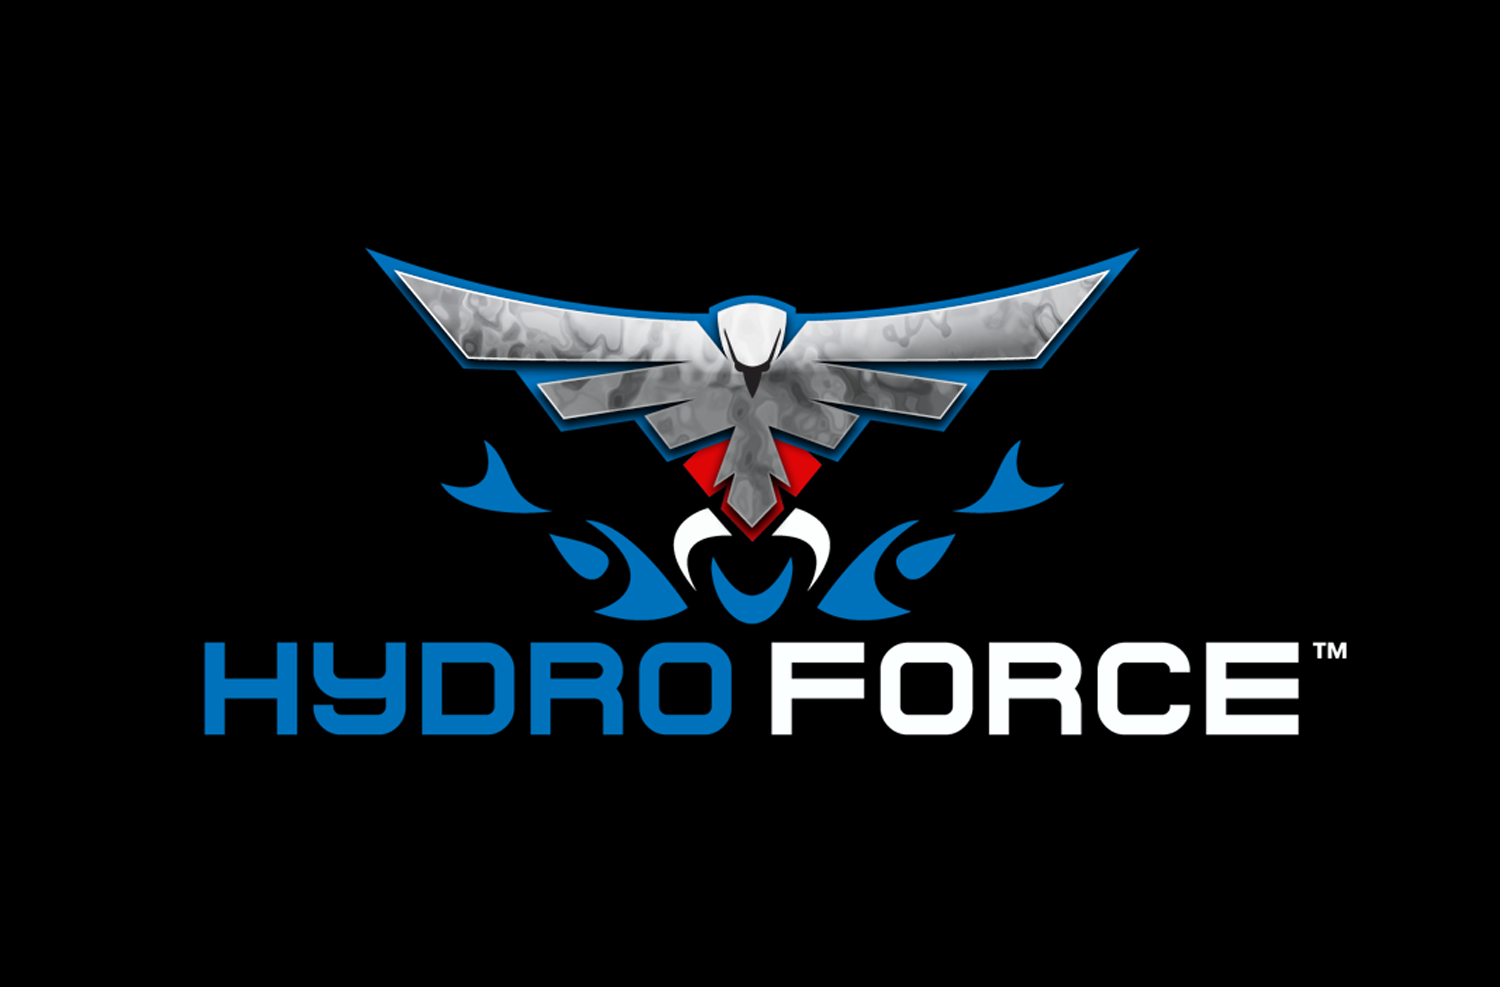 HydroForce Chrome Logo